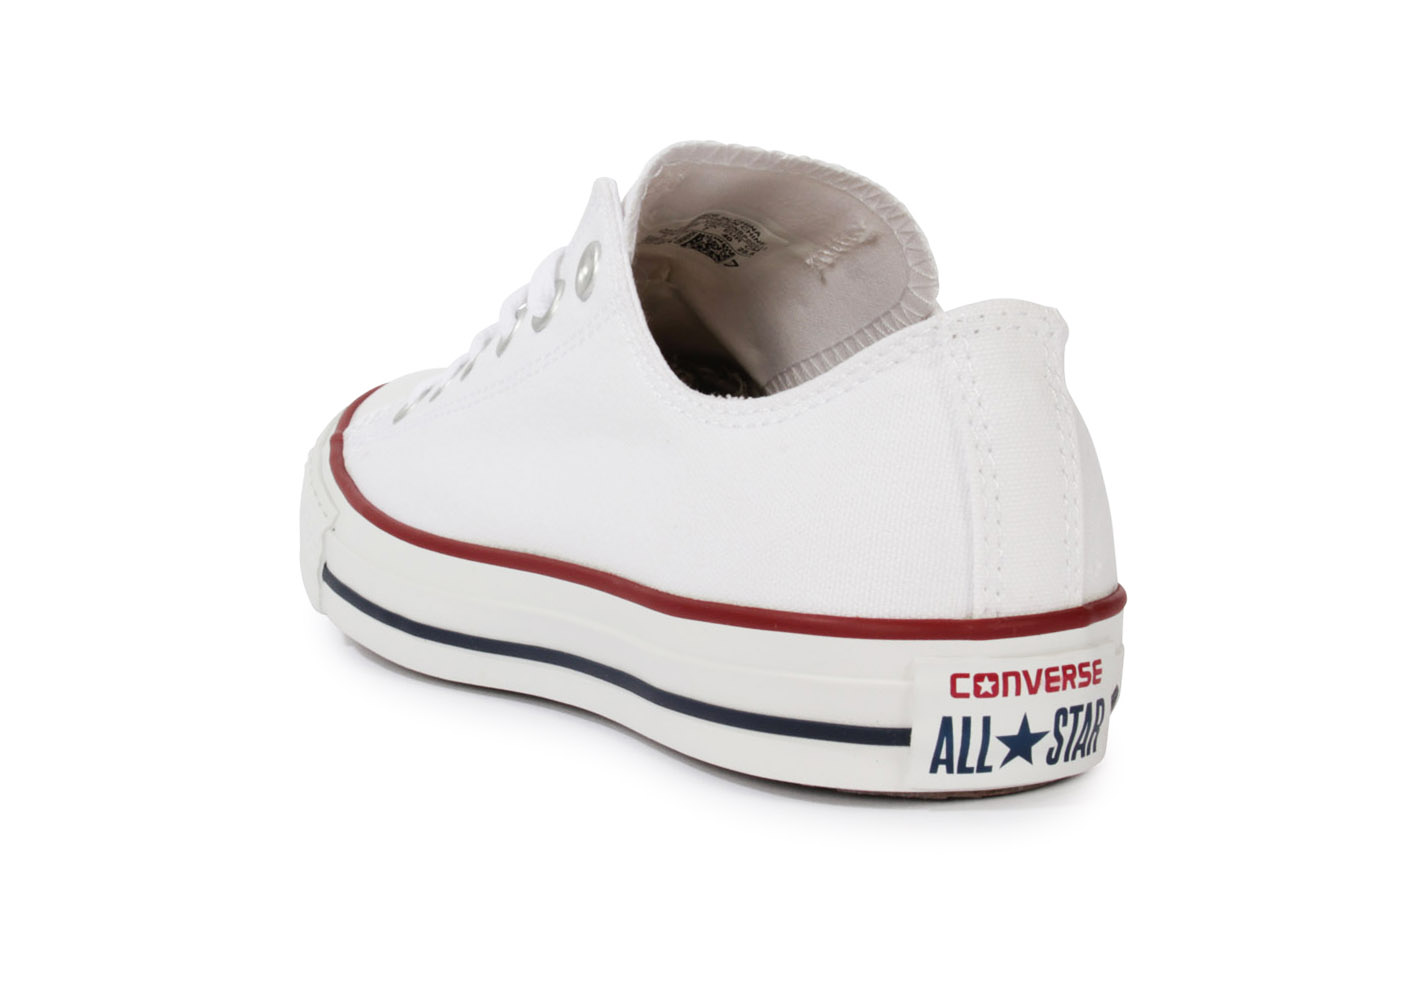 chaussures femme converse basse